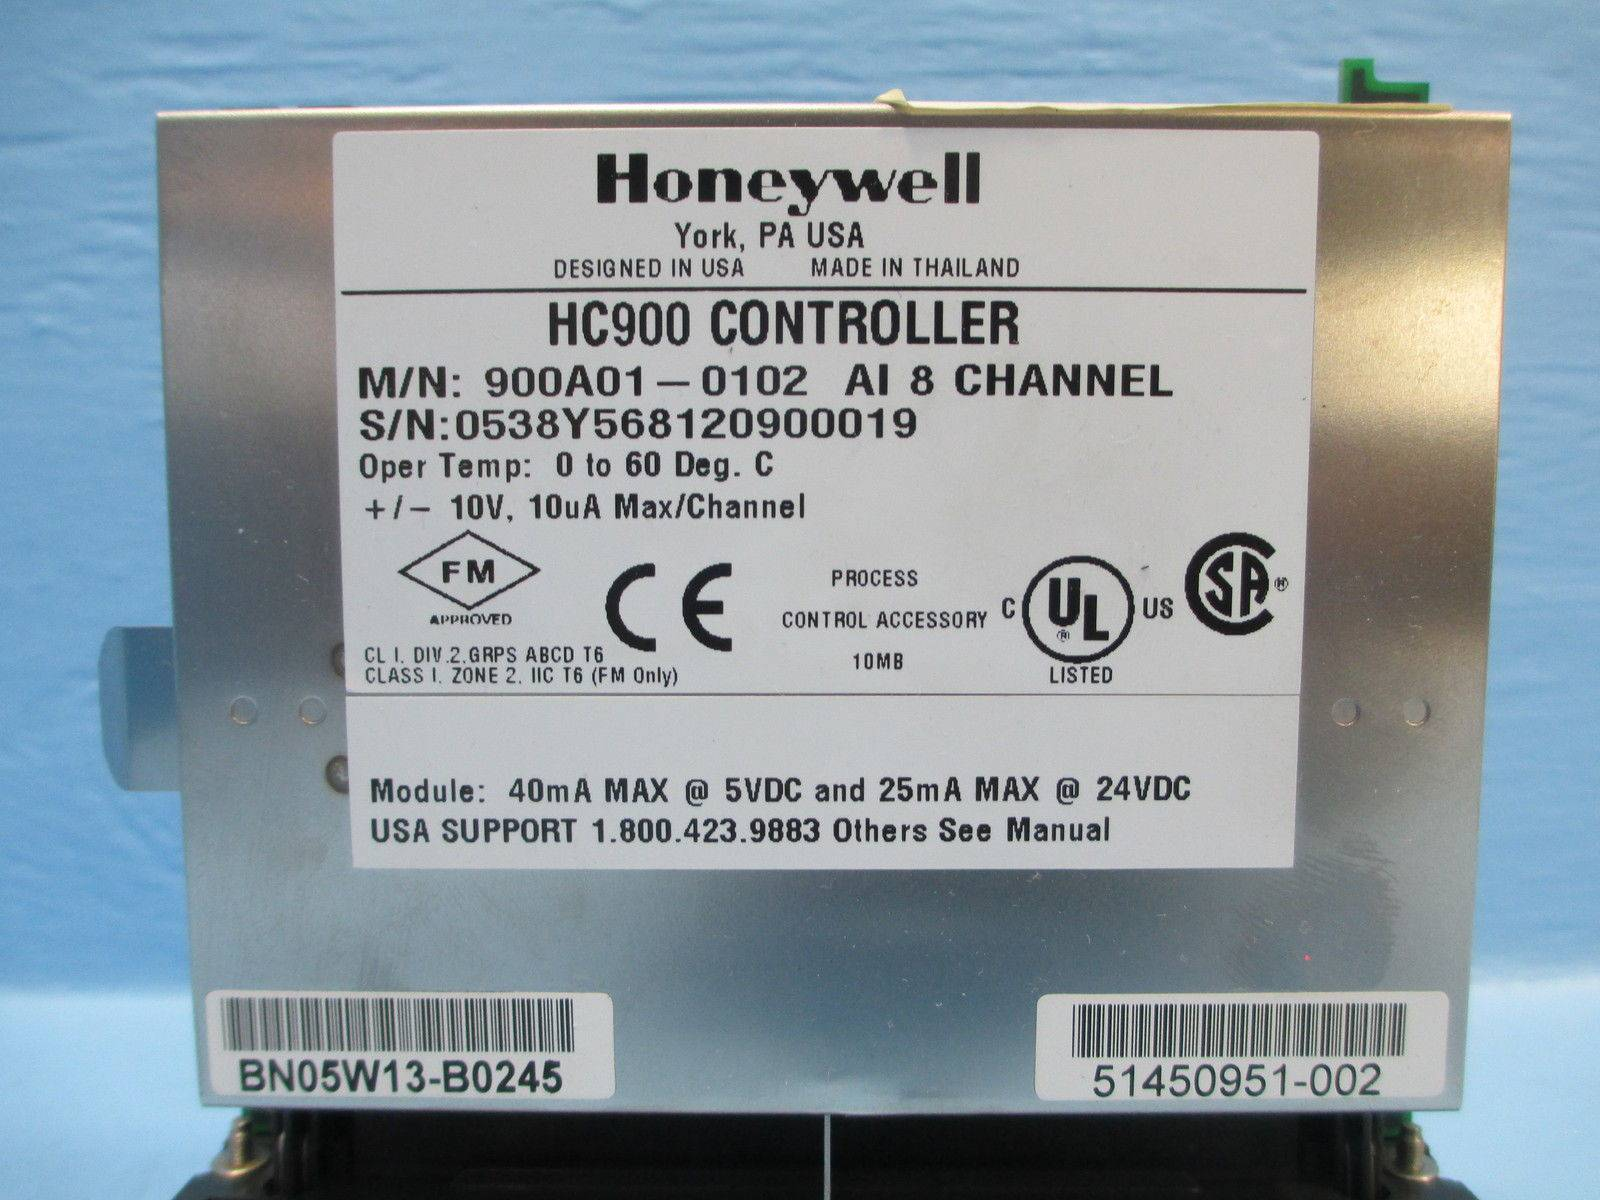 honeywellhc900cont_93644_honeywell_900a01 01029__2 honeywell hc900 controller 900a01 0102 analog input 8 900a010102  at cos-gaming.co